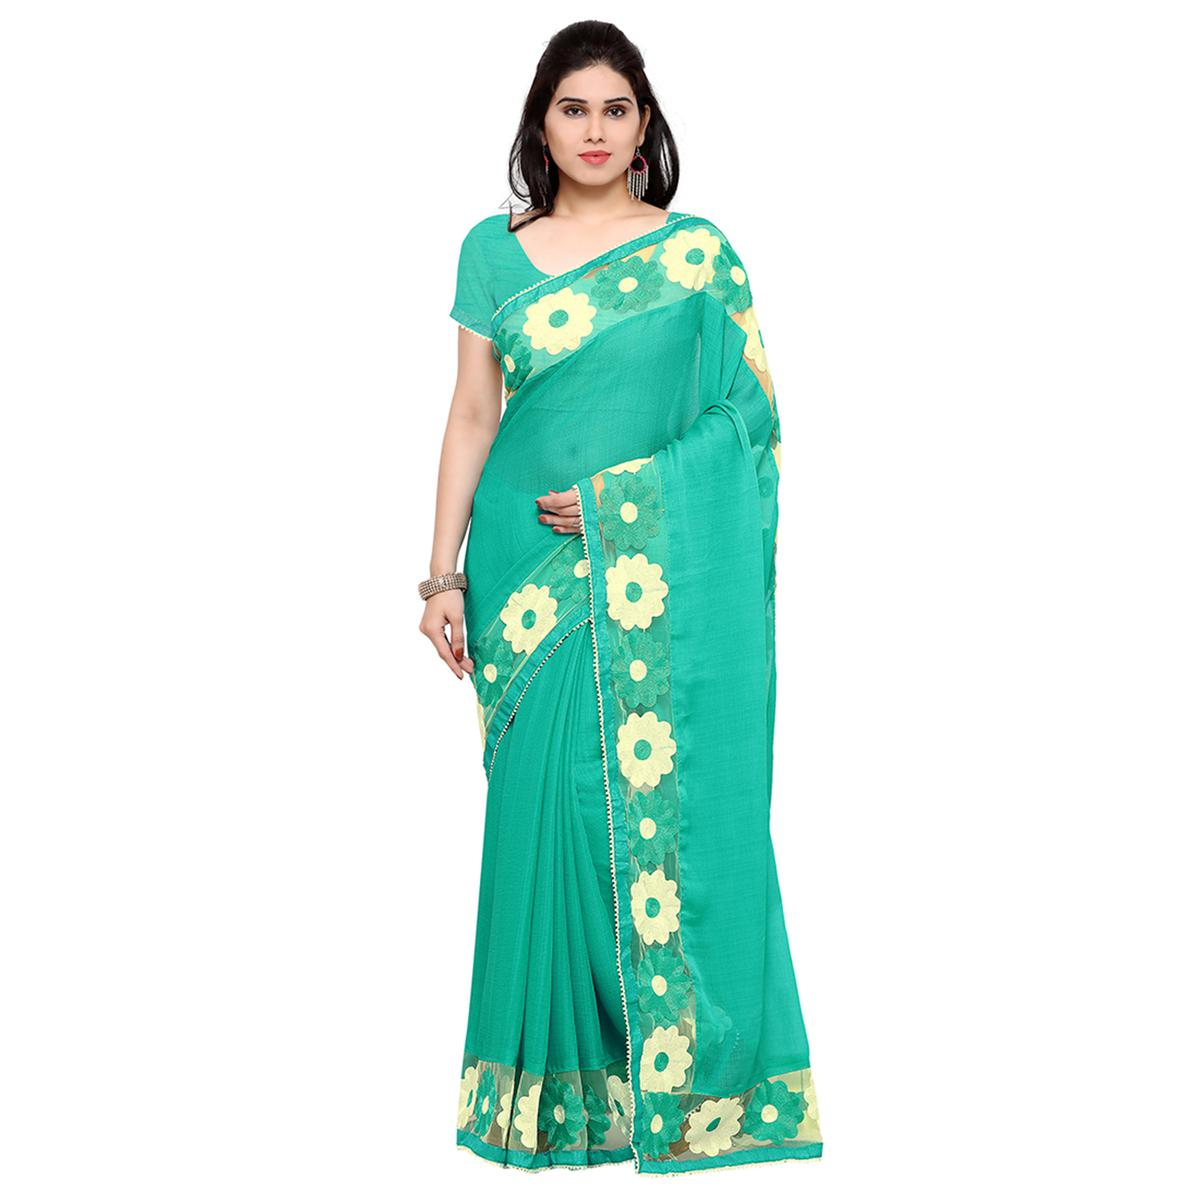 Aqua Green Party Wear Chiffon Saree